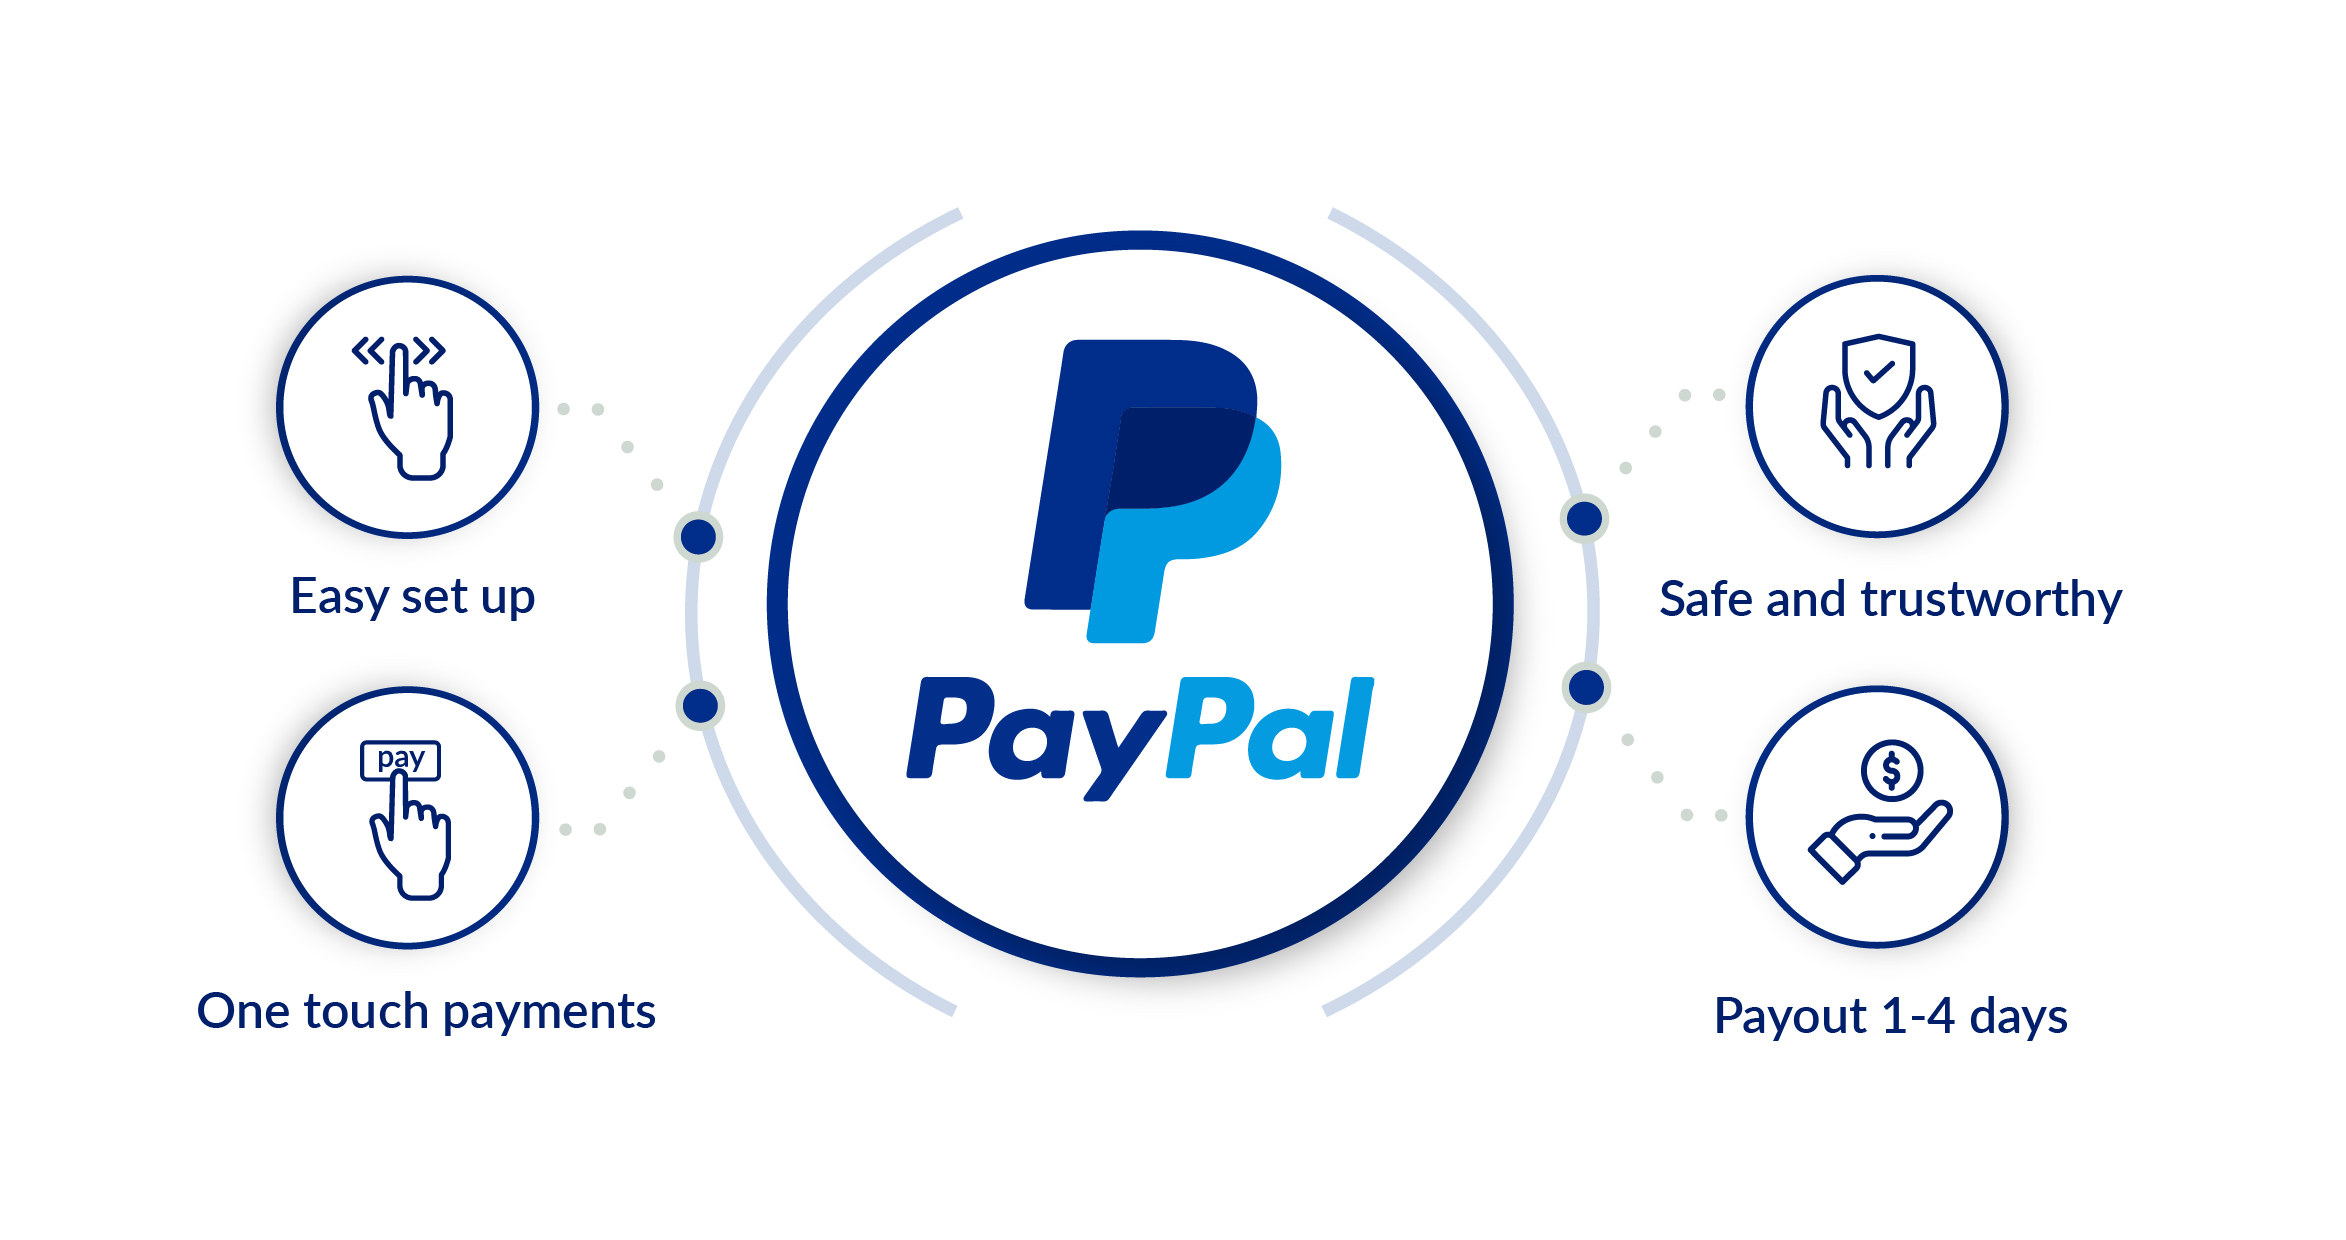 PayPal features